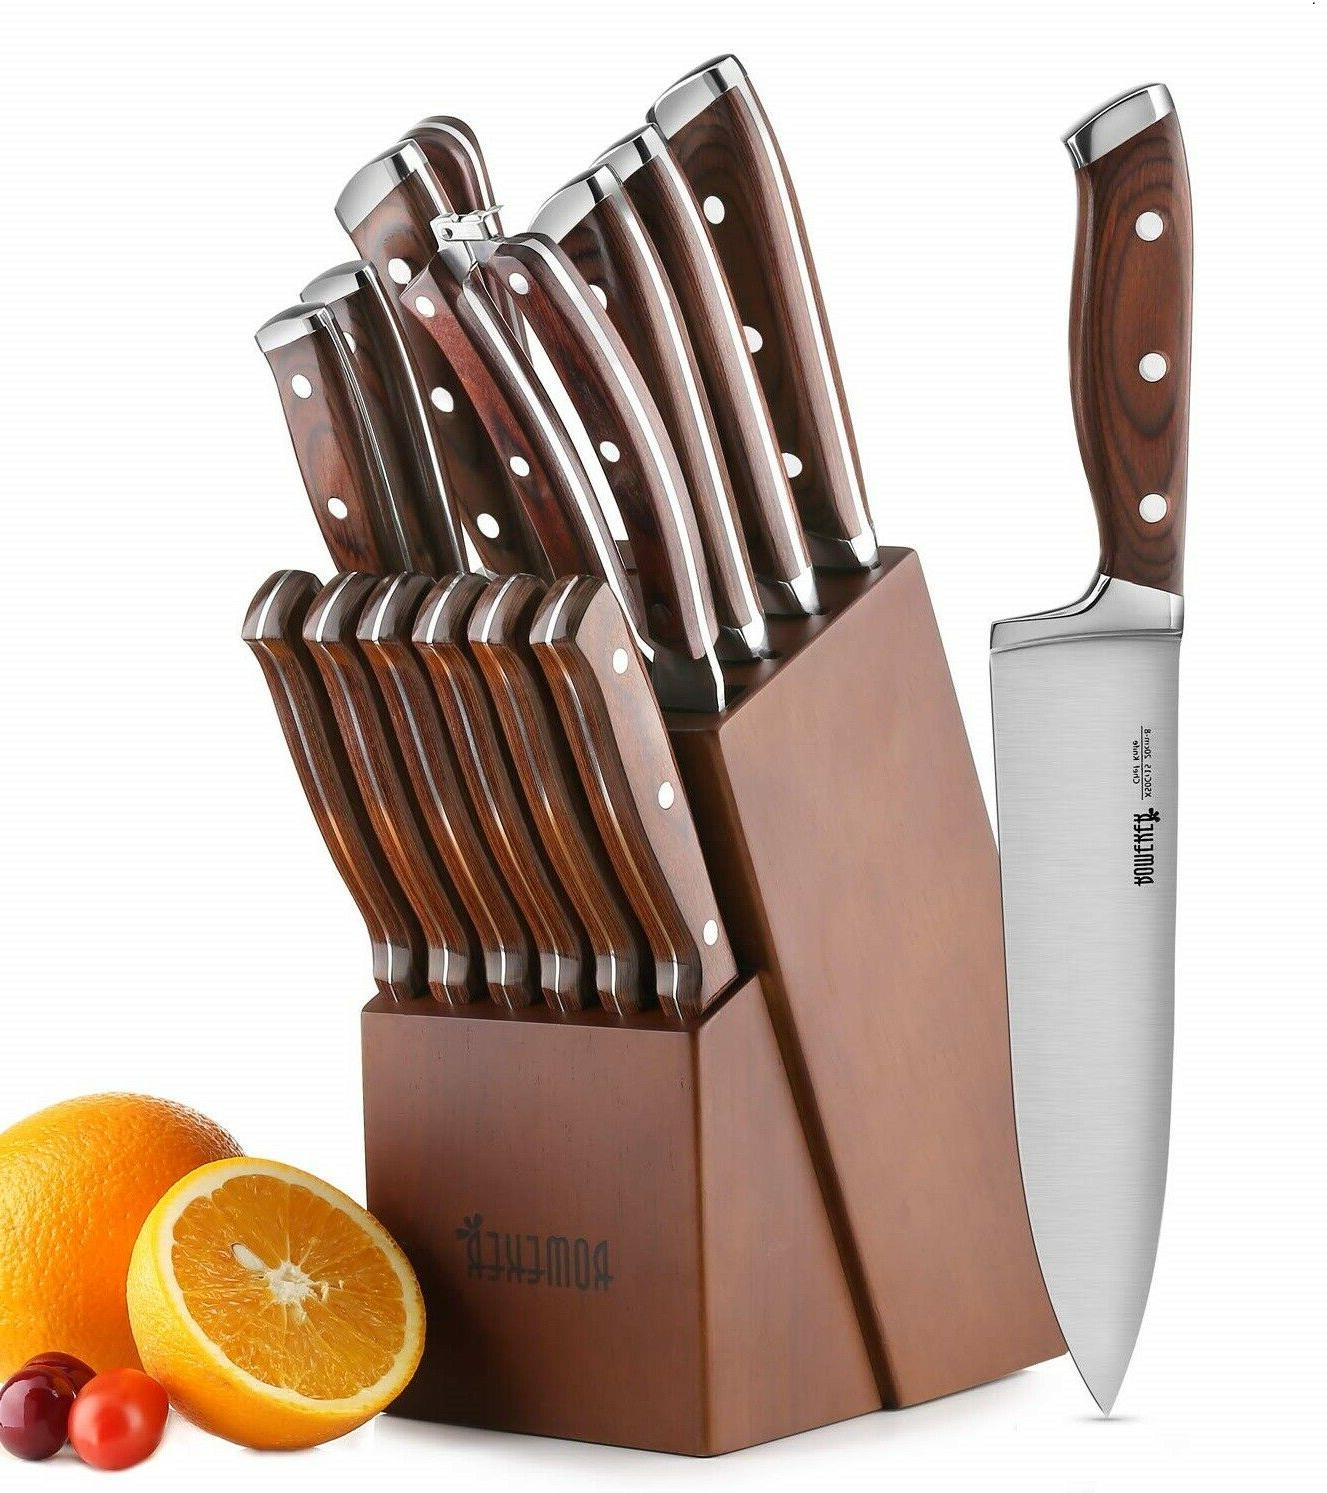 15 piece high carbon steel chef kitchen